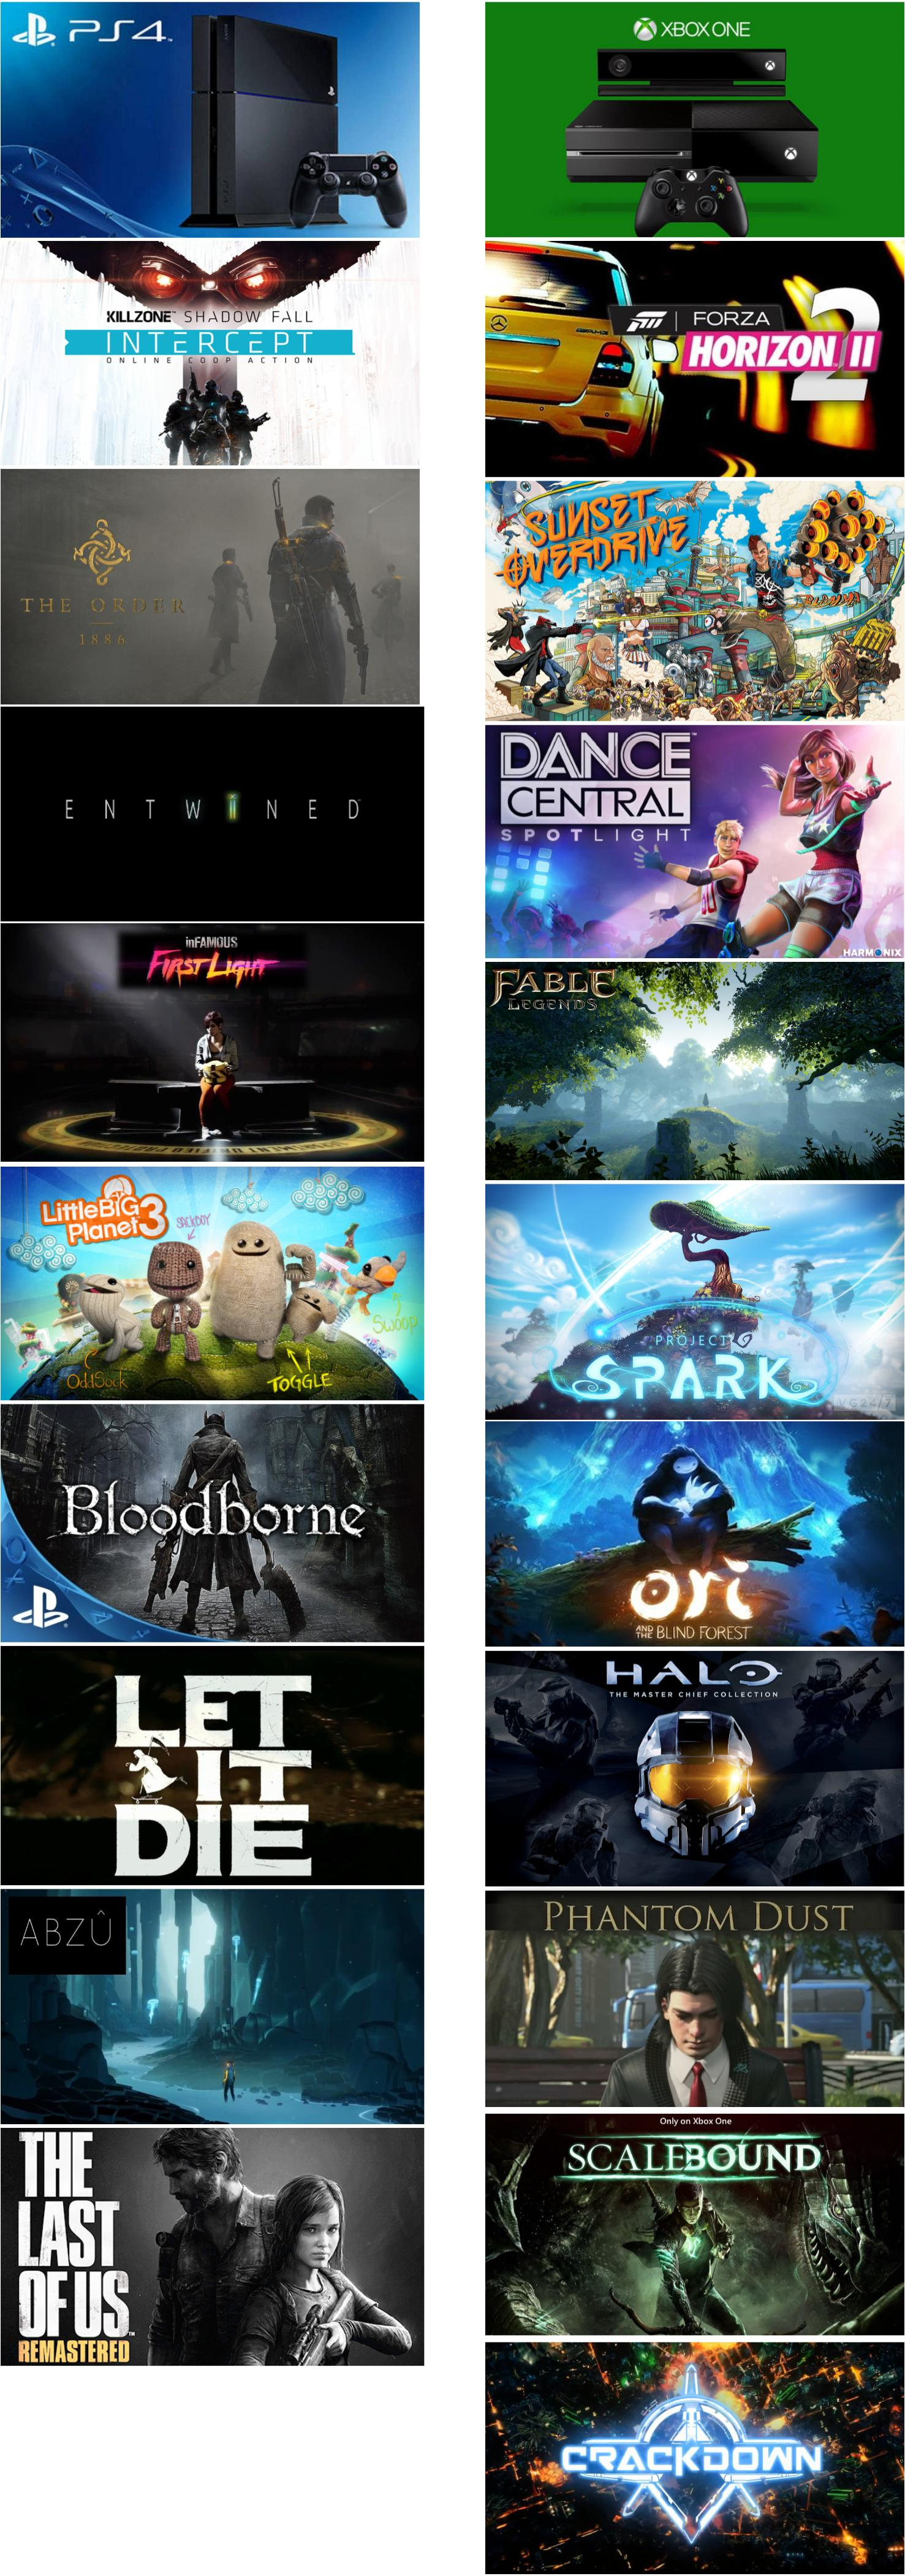 ps4 and xbox one exclusives at e3